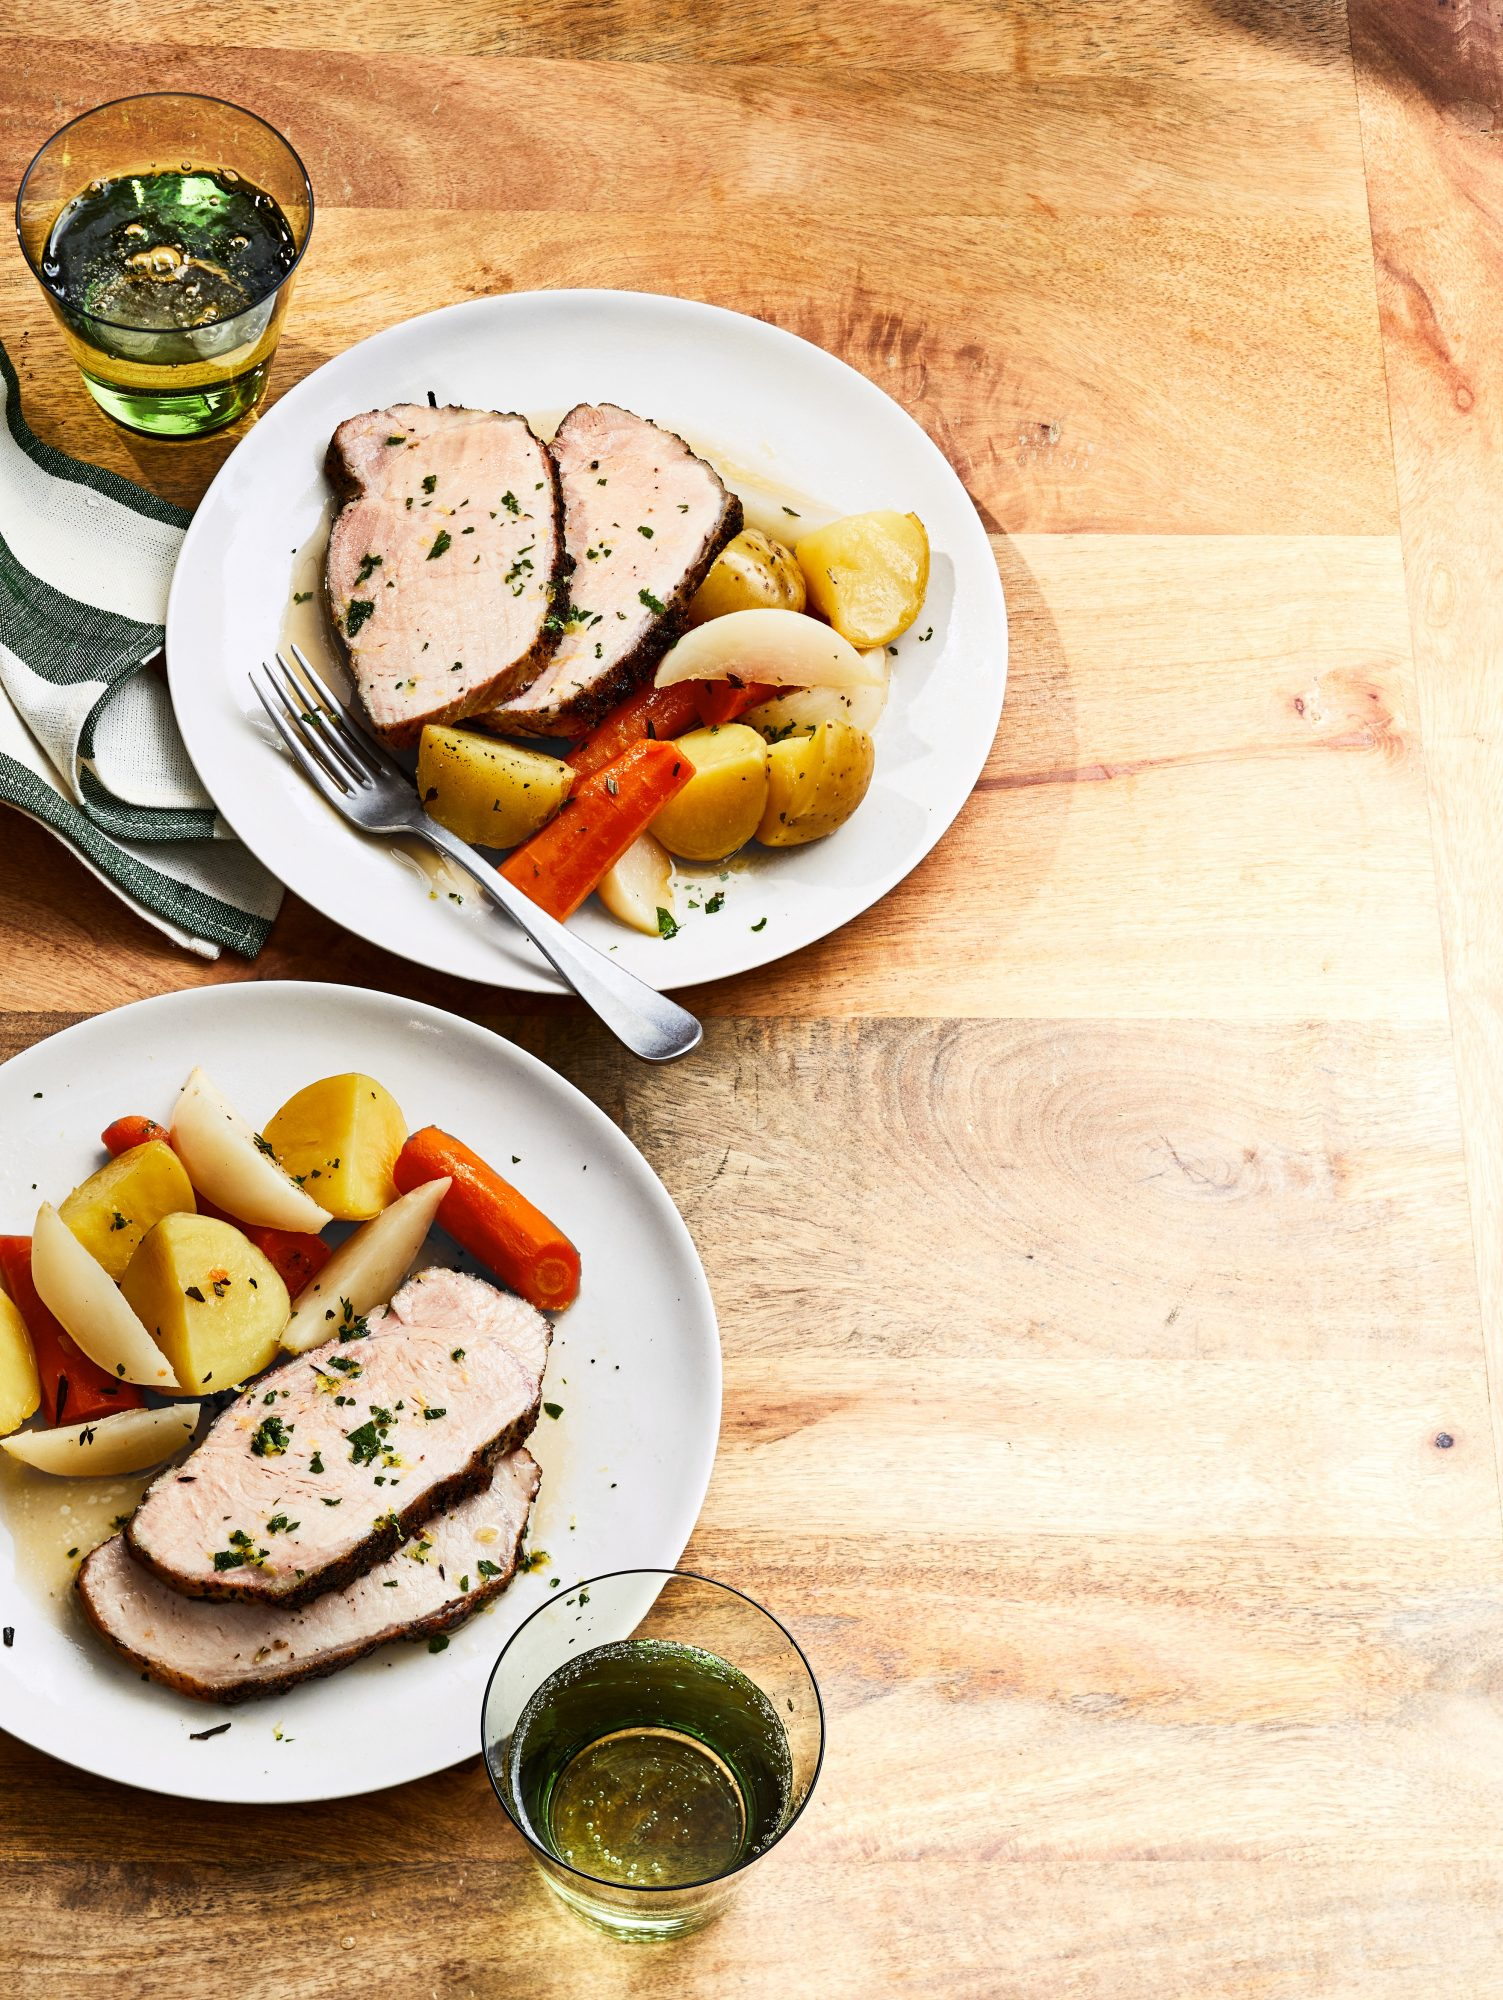 Slow-Cooker Pork Roast with Carrots, Turnips, and Potatoes